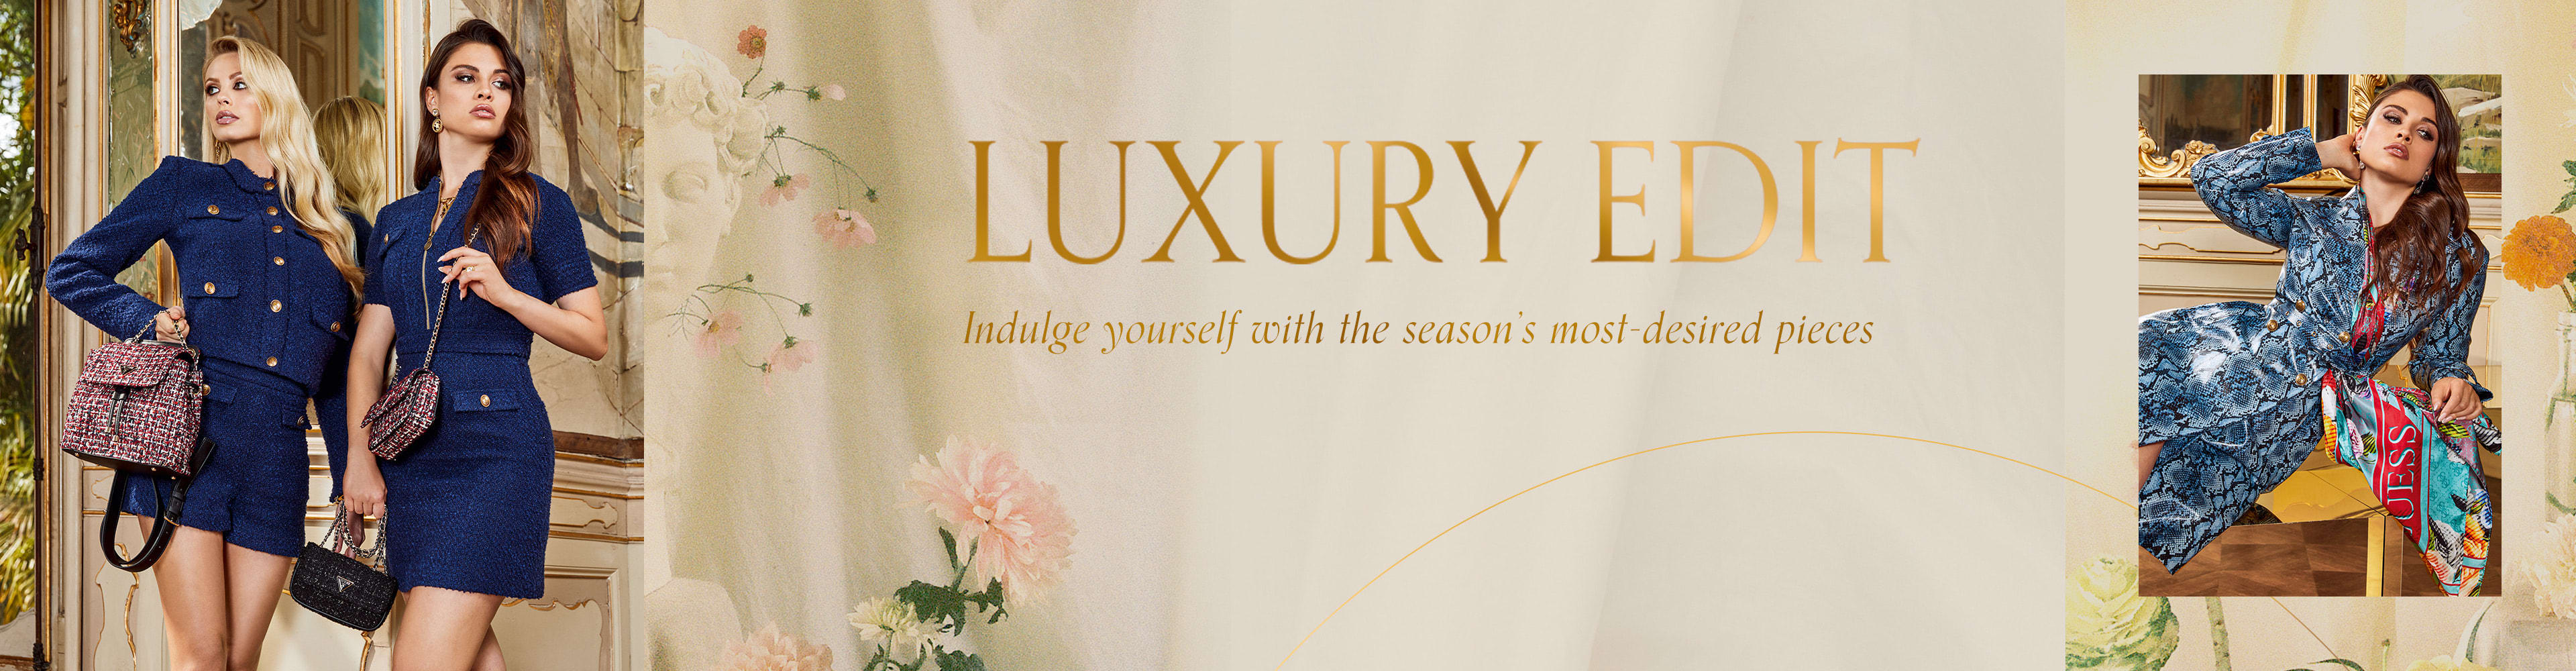 Luxury Edit Indulge yourself with the season's most-desired piece